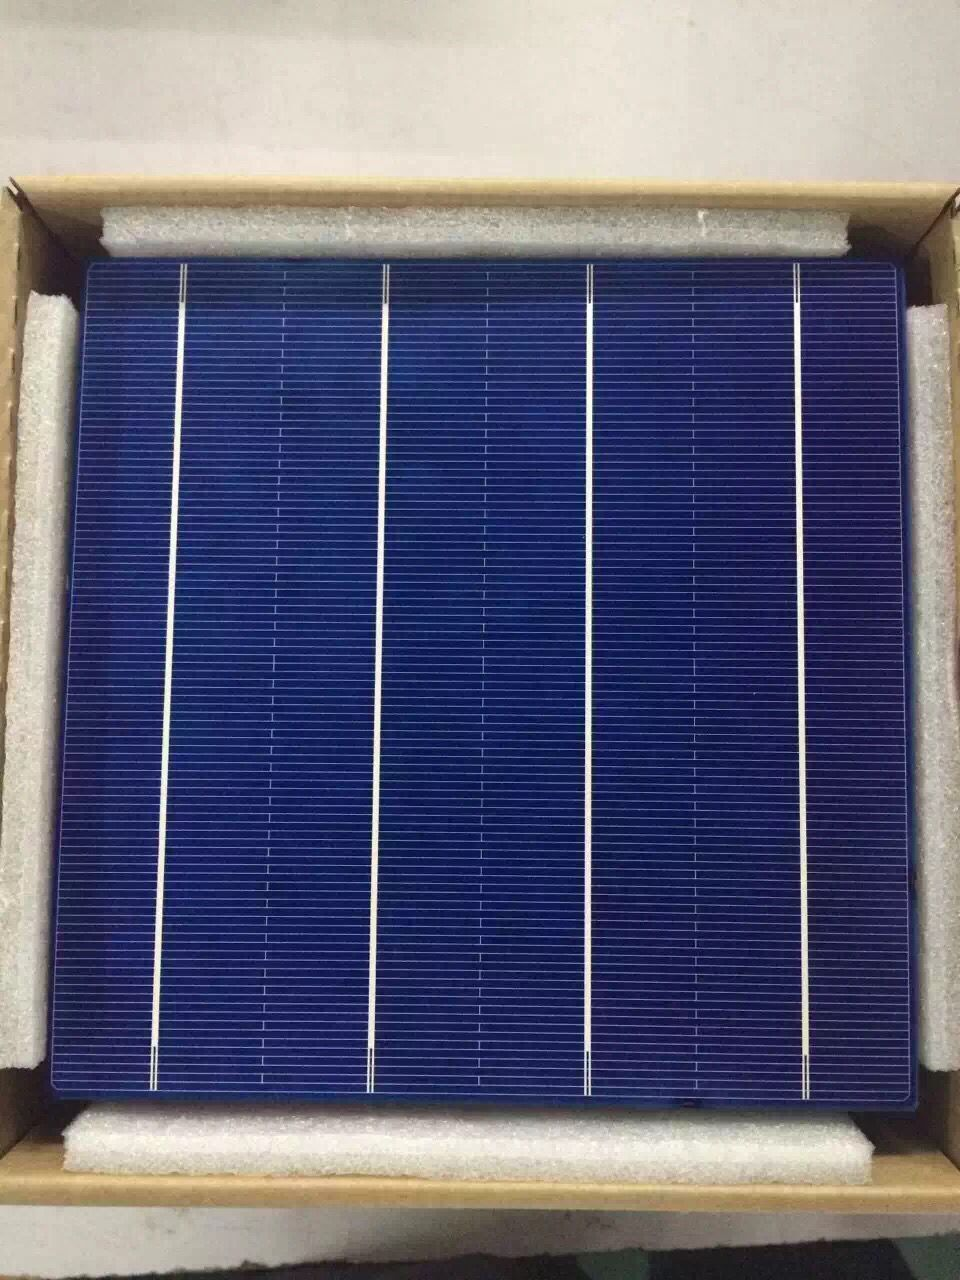 10 Pcs 45W 156MM Efficiency Photovoltaic Polycrystalline Silicon Solar Cell 6x6 Prices Cheap Grade A For DIY PV Poly Solar Panel